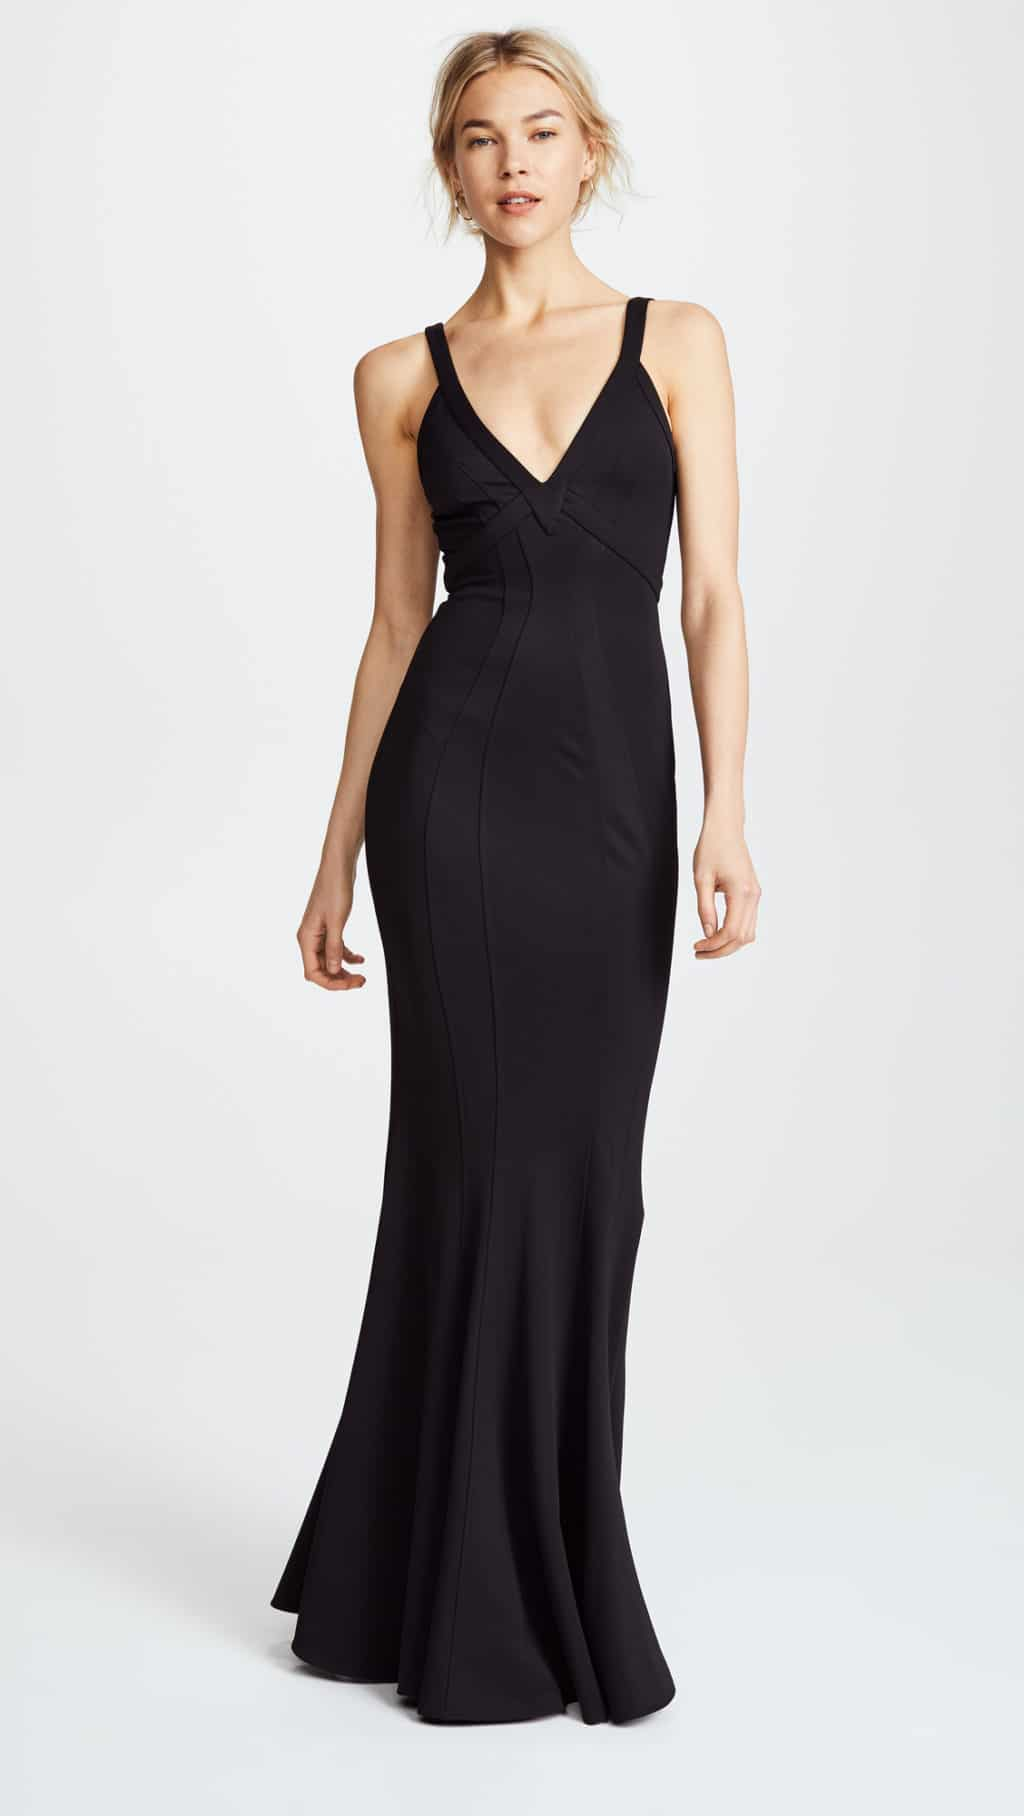 29ad4576655 ZAC ZAC POSEN Gemma Black Gown - We Select Dresses